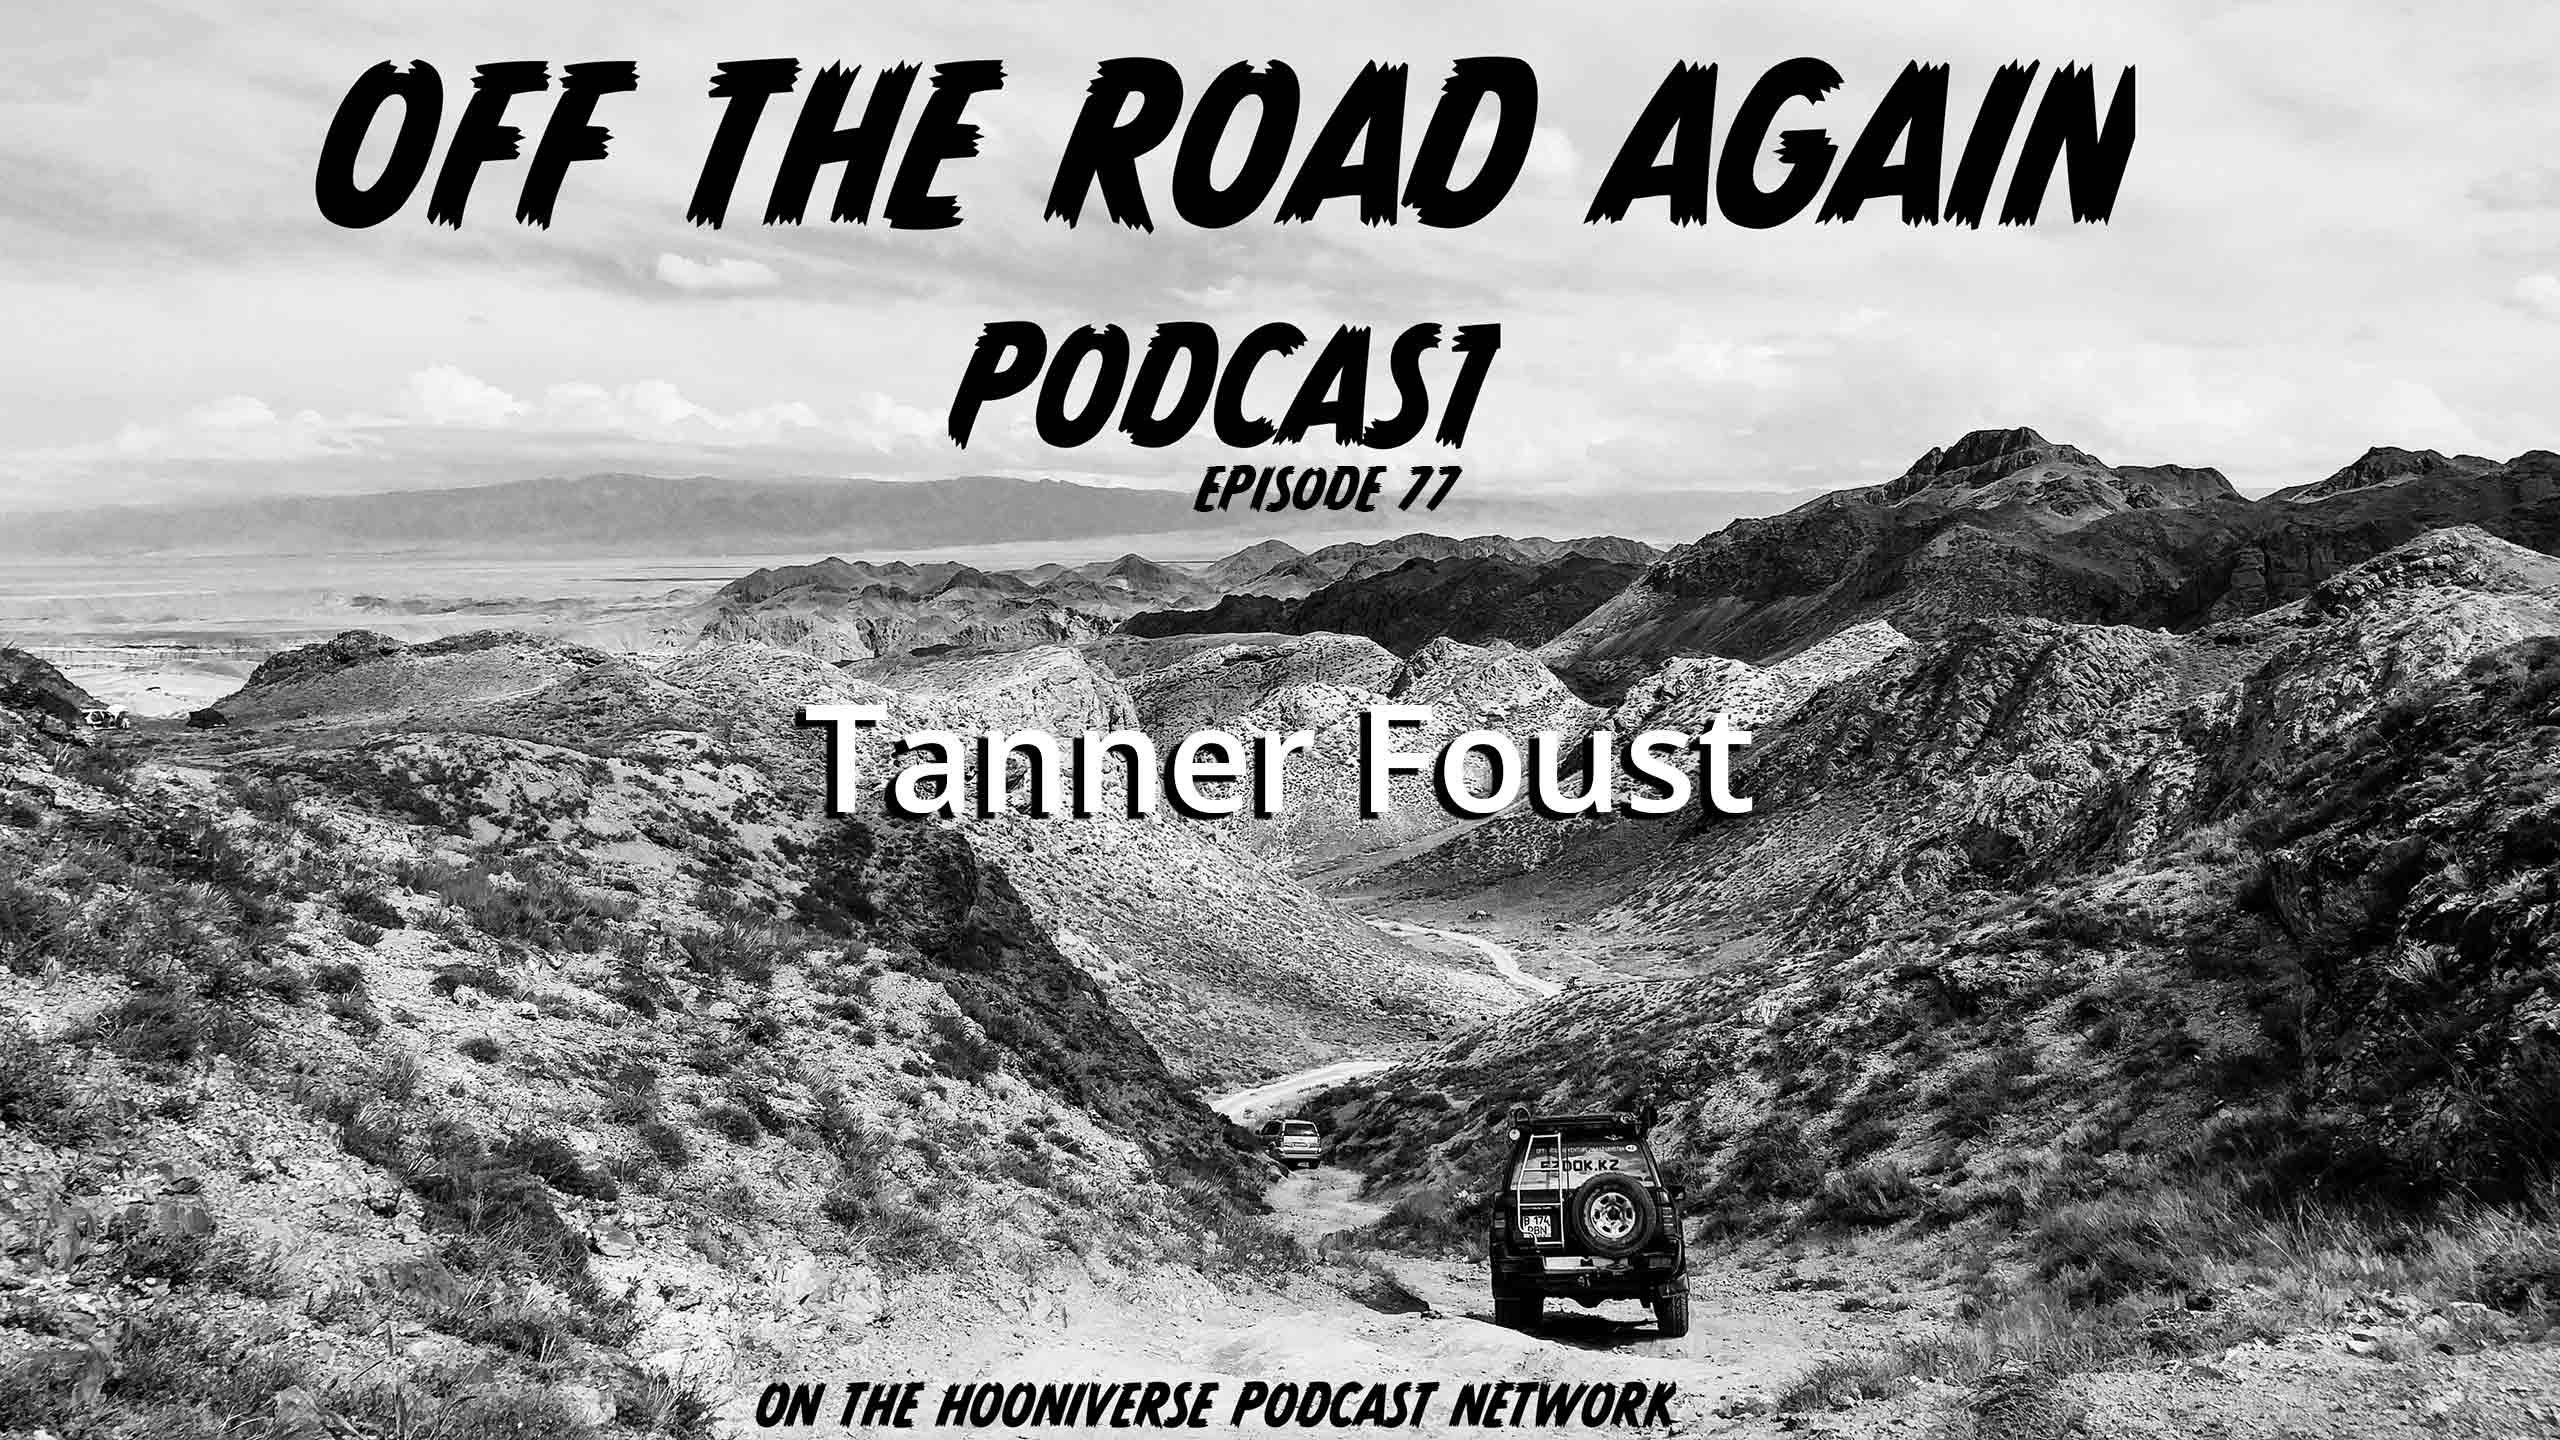 Tanner-Foust-Off-The-Road-Again-Podcast-Episode-77